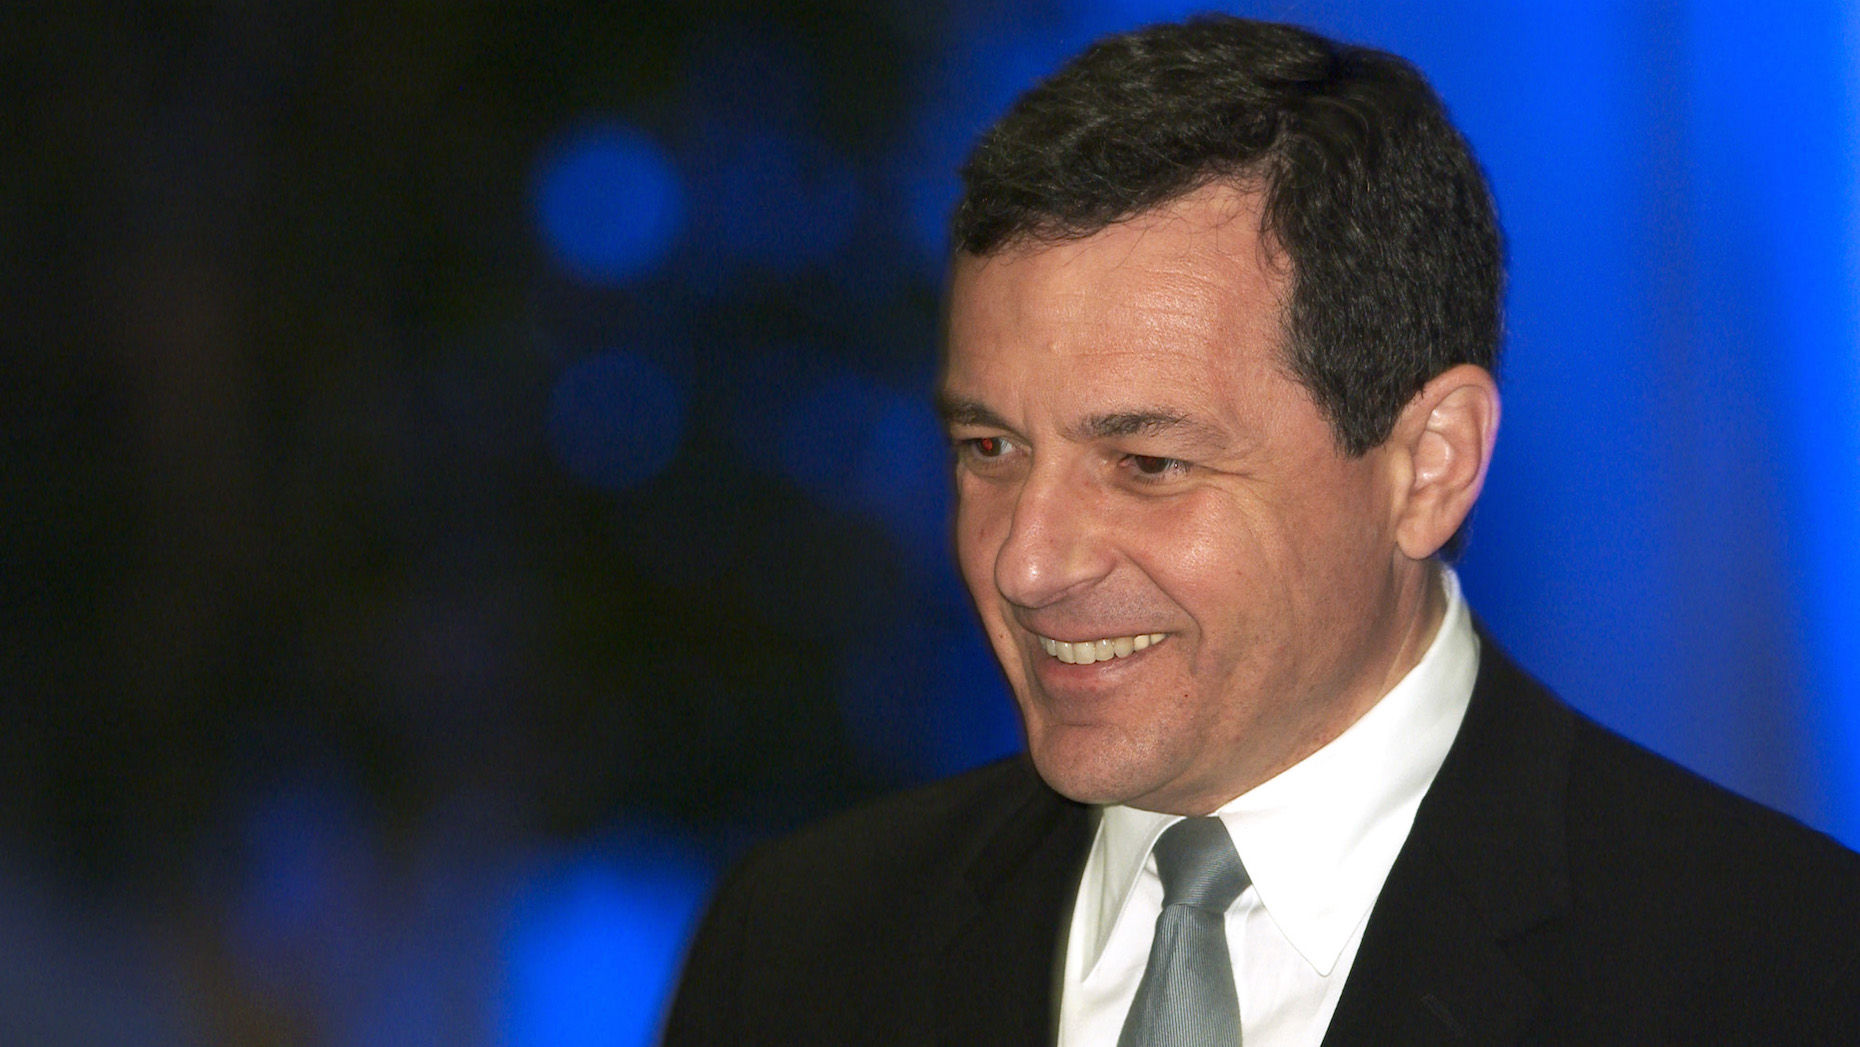 Disney CEO Bob Iger. Photo by Bloomberg.